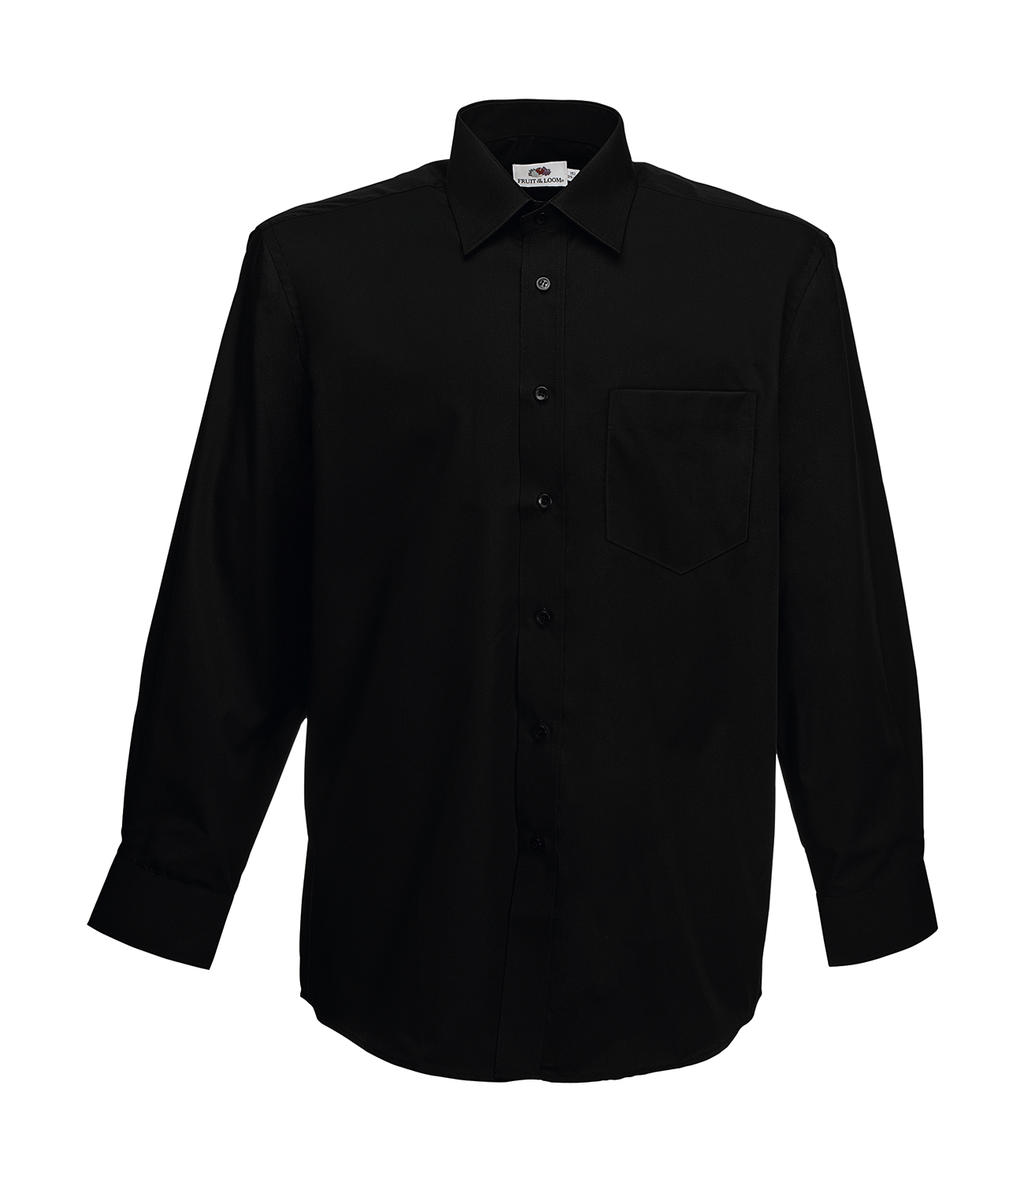 Fruit of the Loom Poplin Shirt Long Sleeve